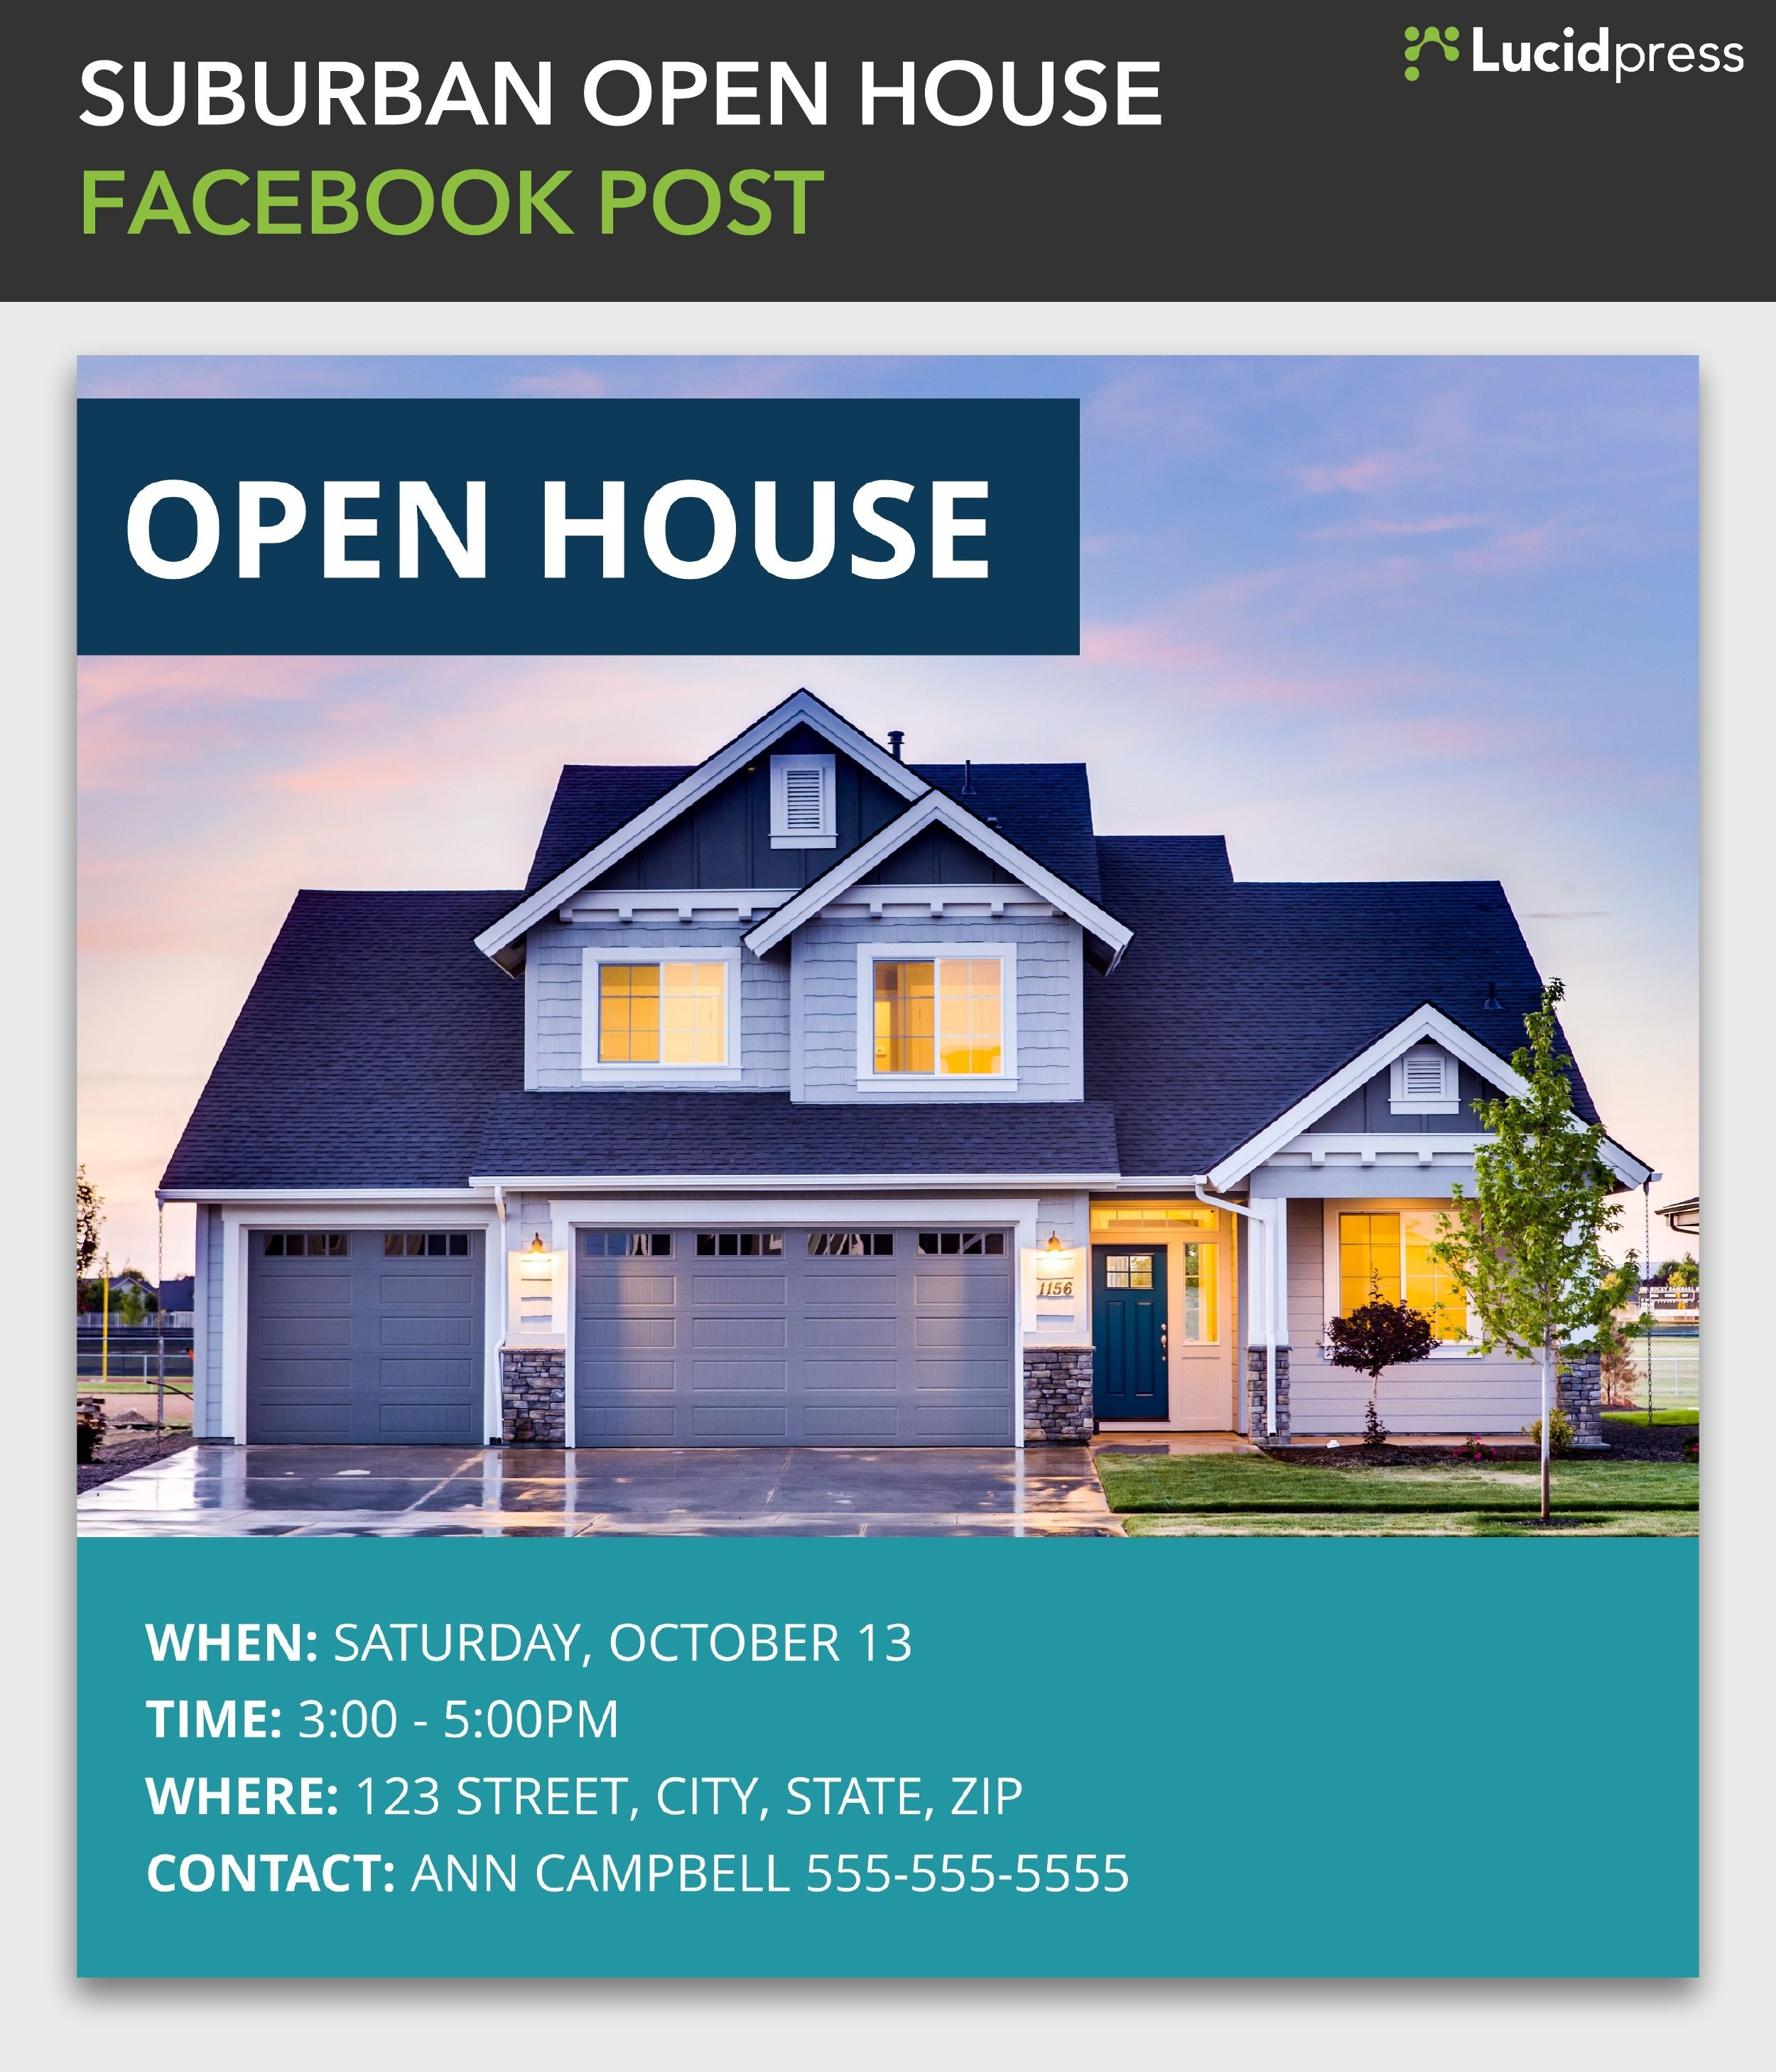 Suburban Open House Facebook Post Template Real Estate Advertising Real Estate Real Estate Templates